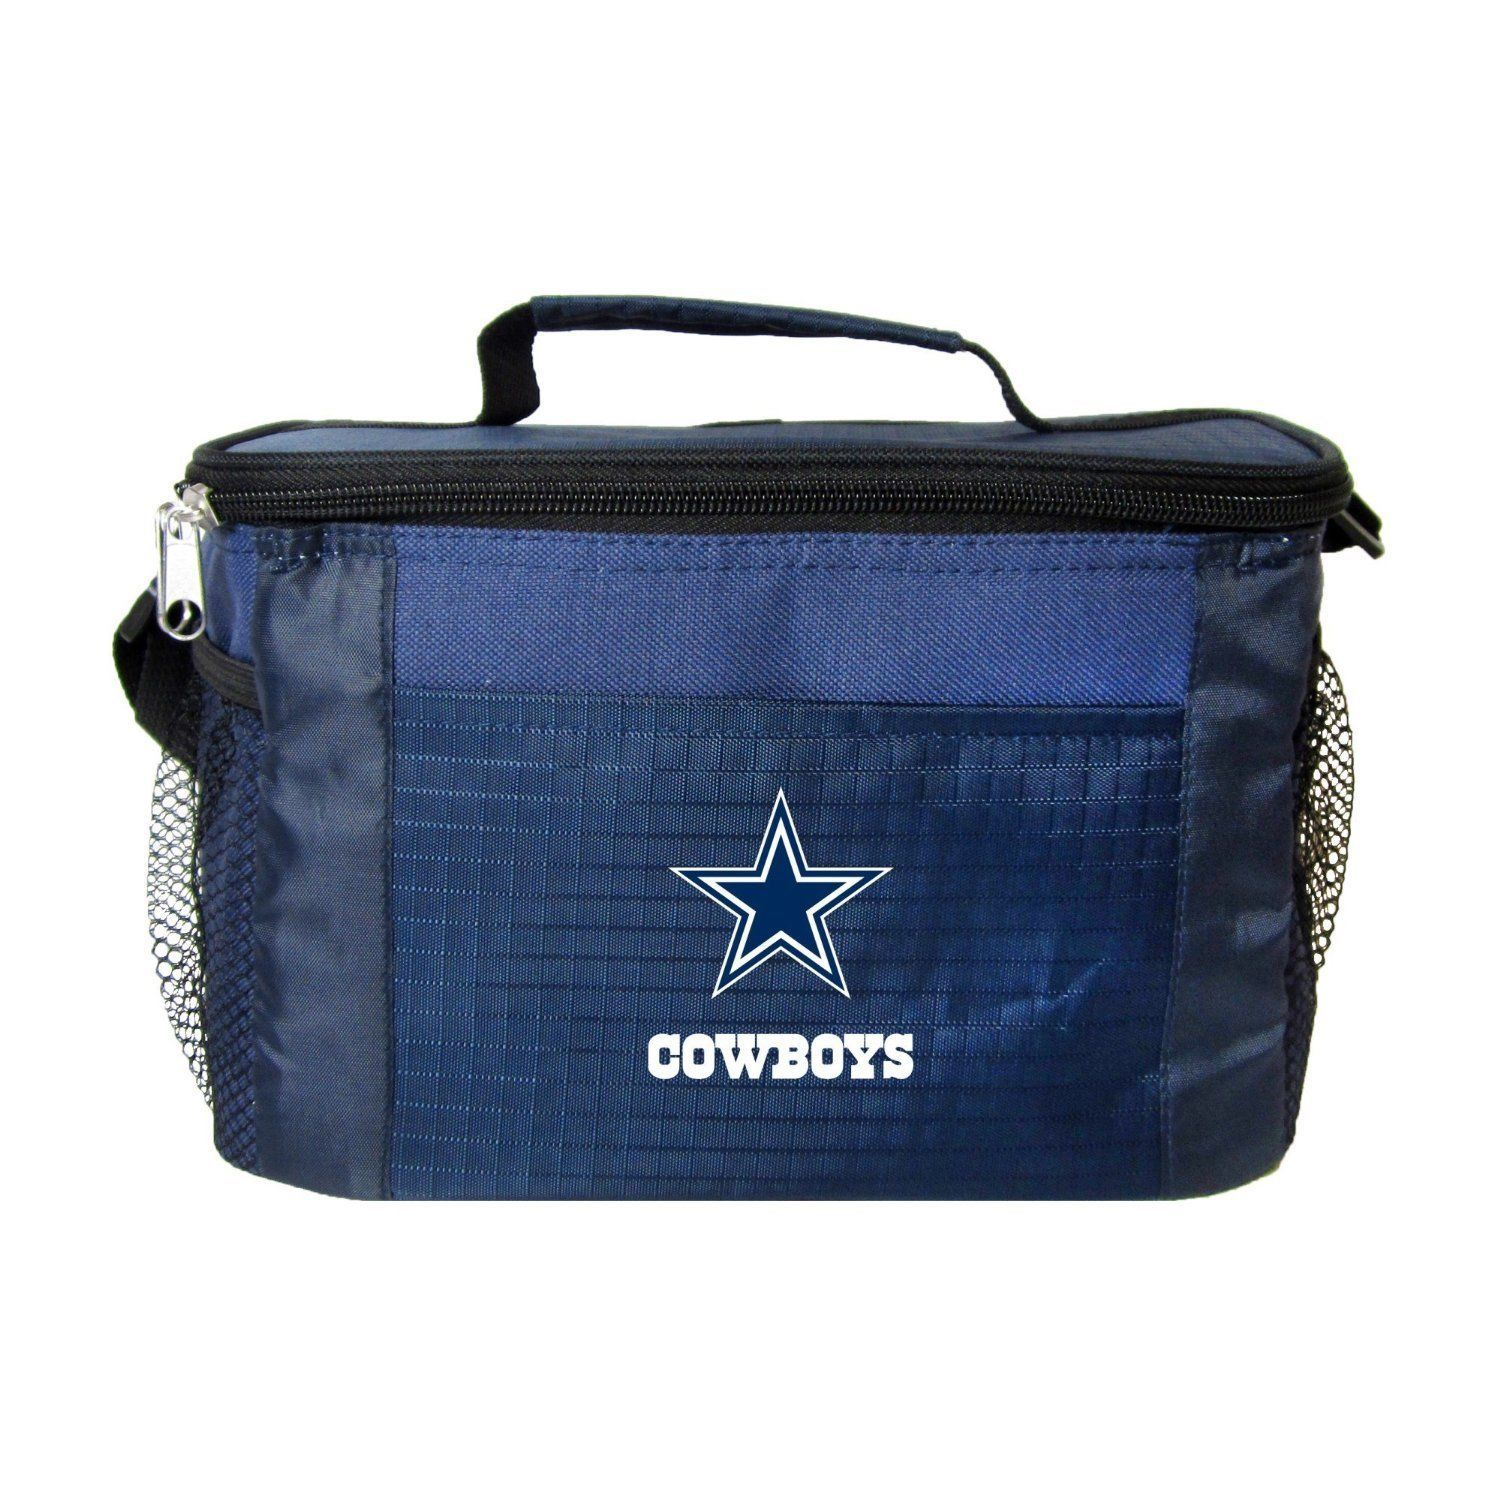 DALLAS COWBOYS LUNCH TOTE 6 PK BEER SODA TEAM LOGO KOOLER BAG NFL FOOTBALL